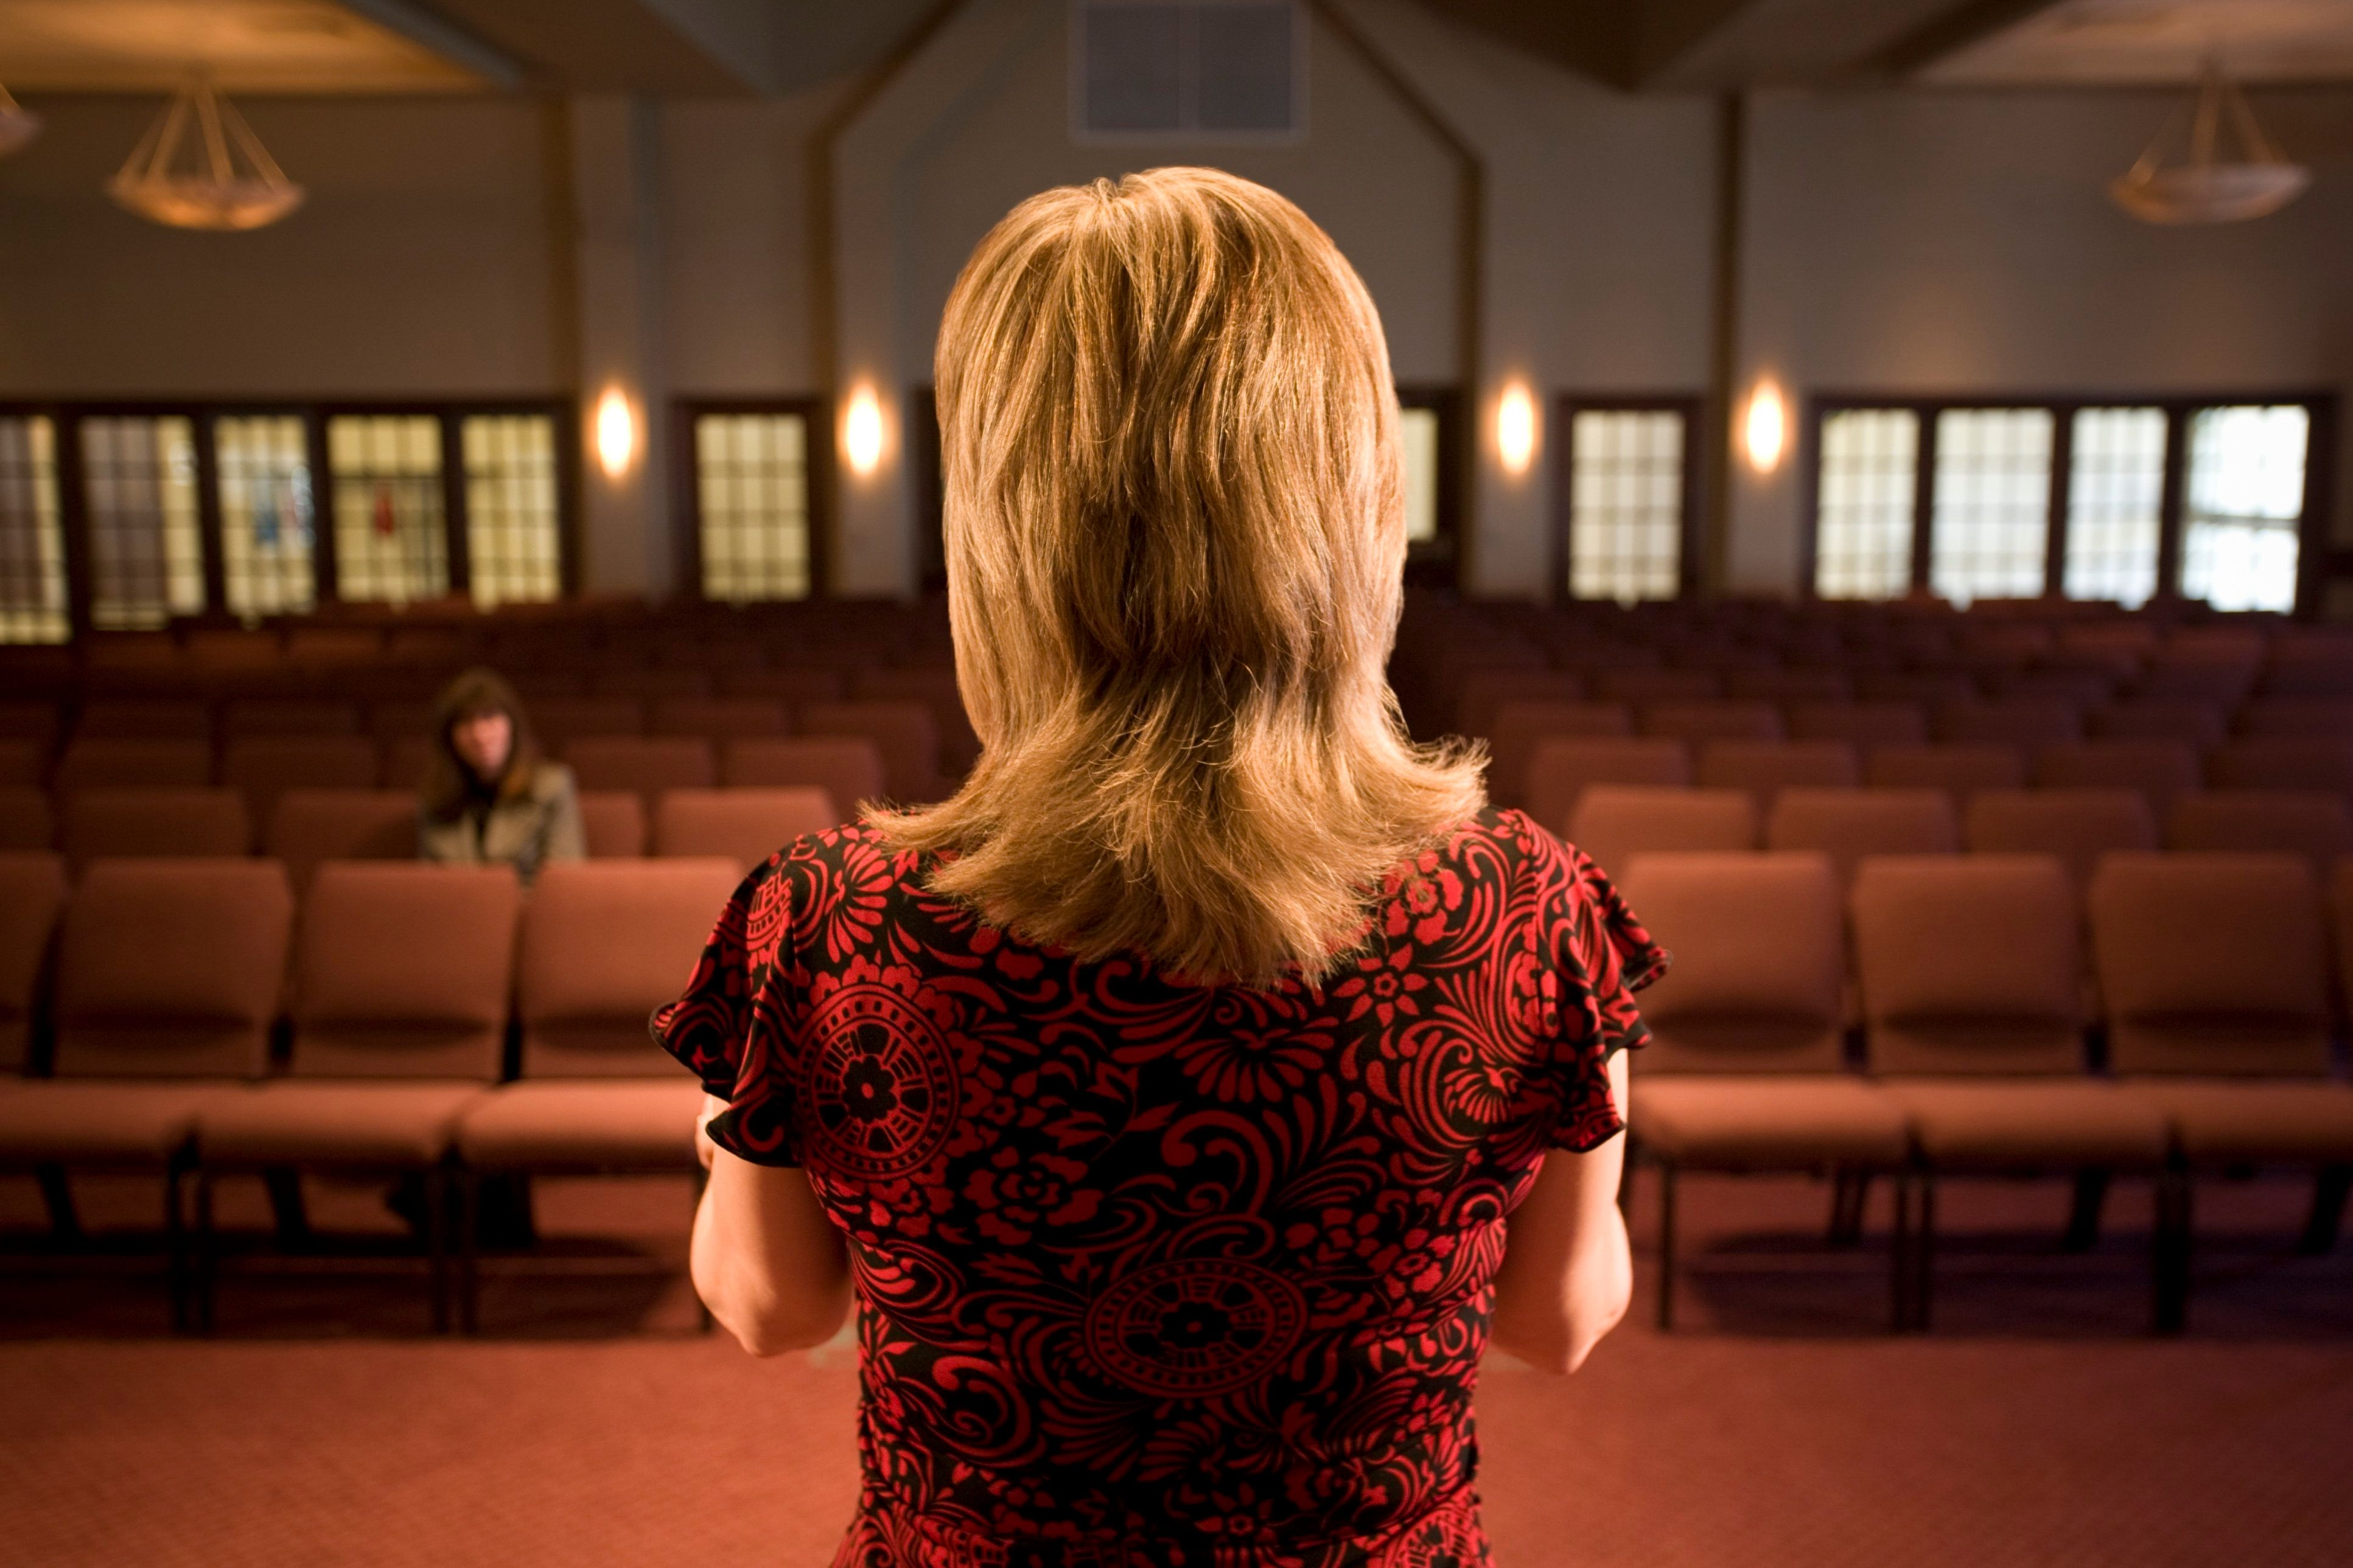 Woman at the front of an empty room